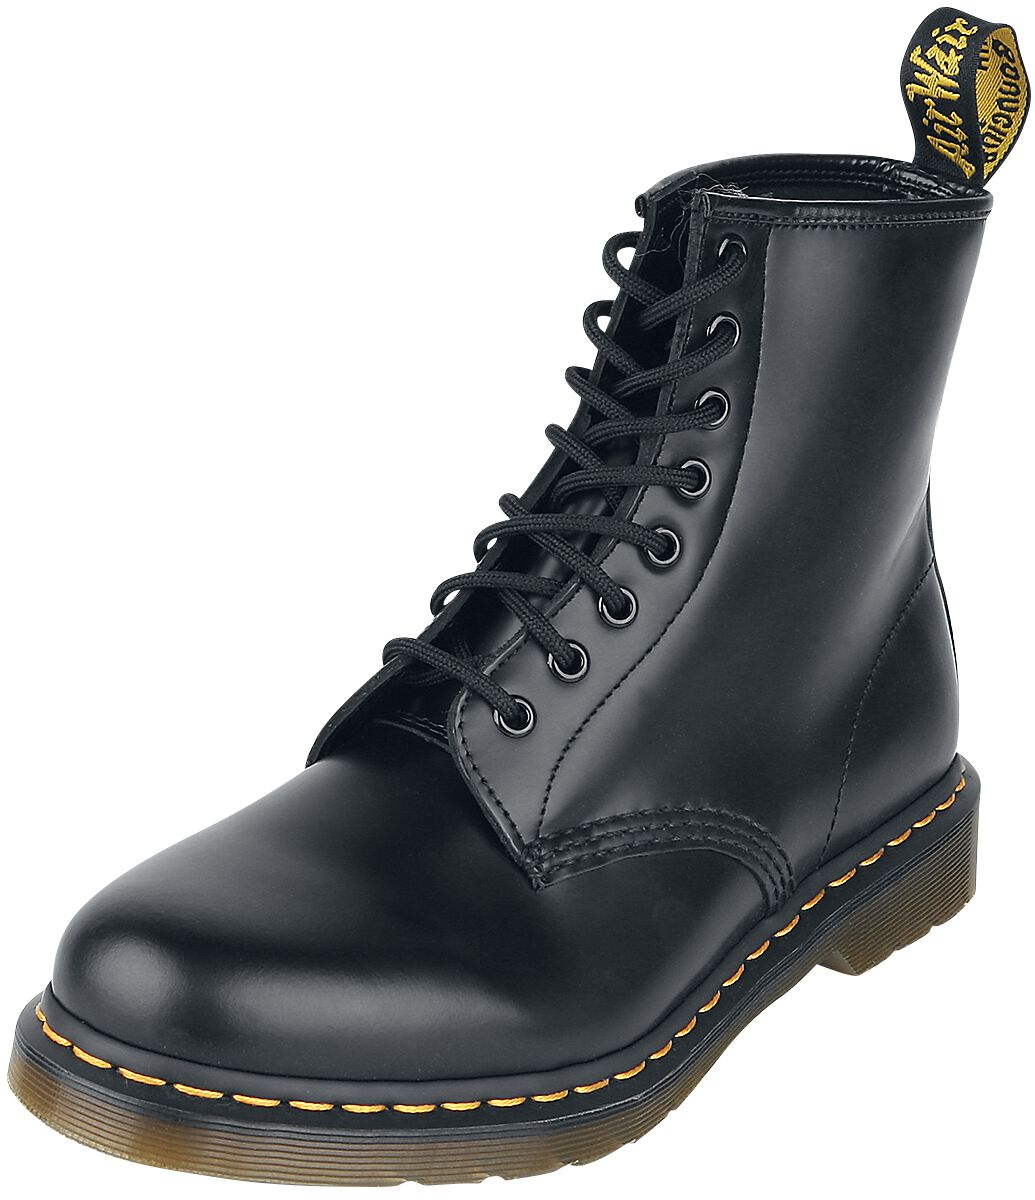 8939f047ead 1460 DMC Smooth | Dr. Martens Laars | Large